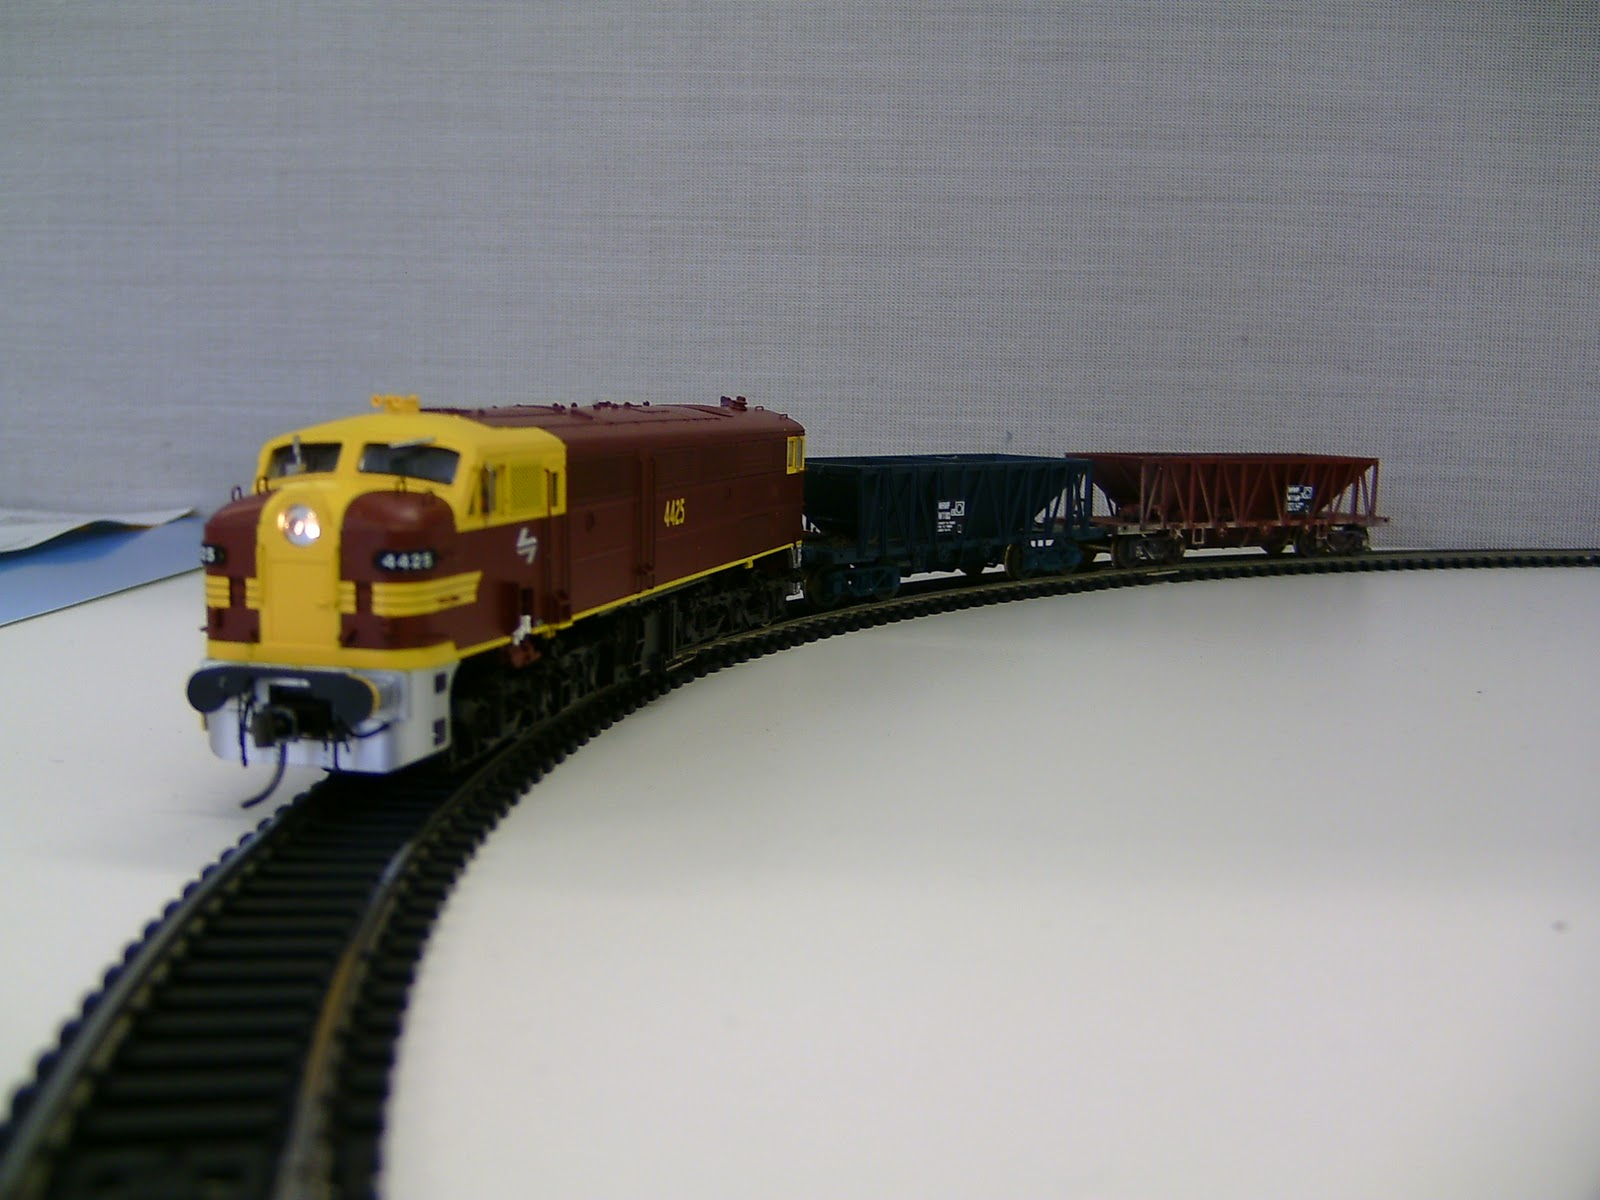 Craig's Shed: Friday was Bring a Model Train to Work Day